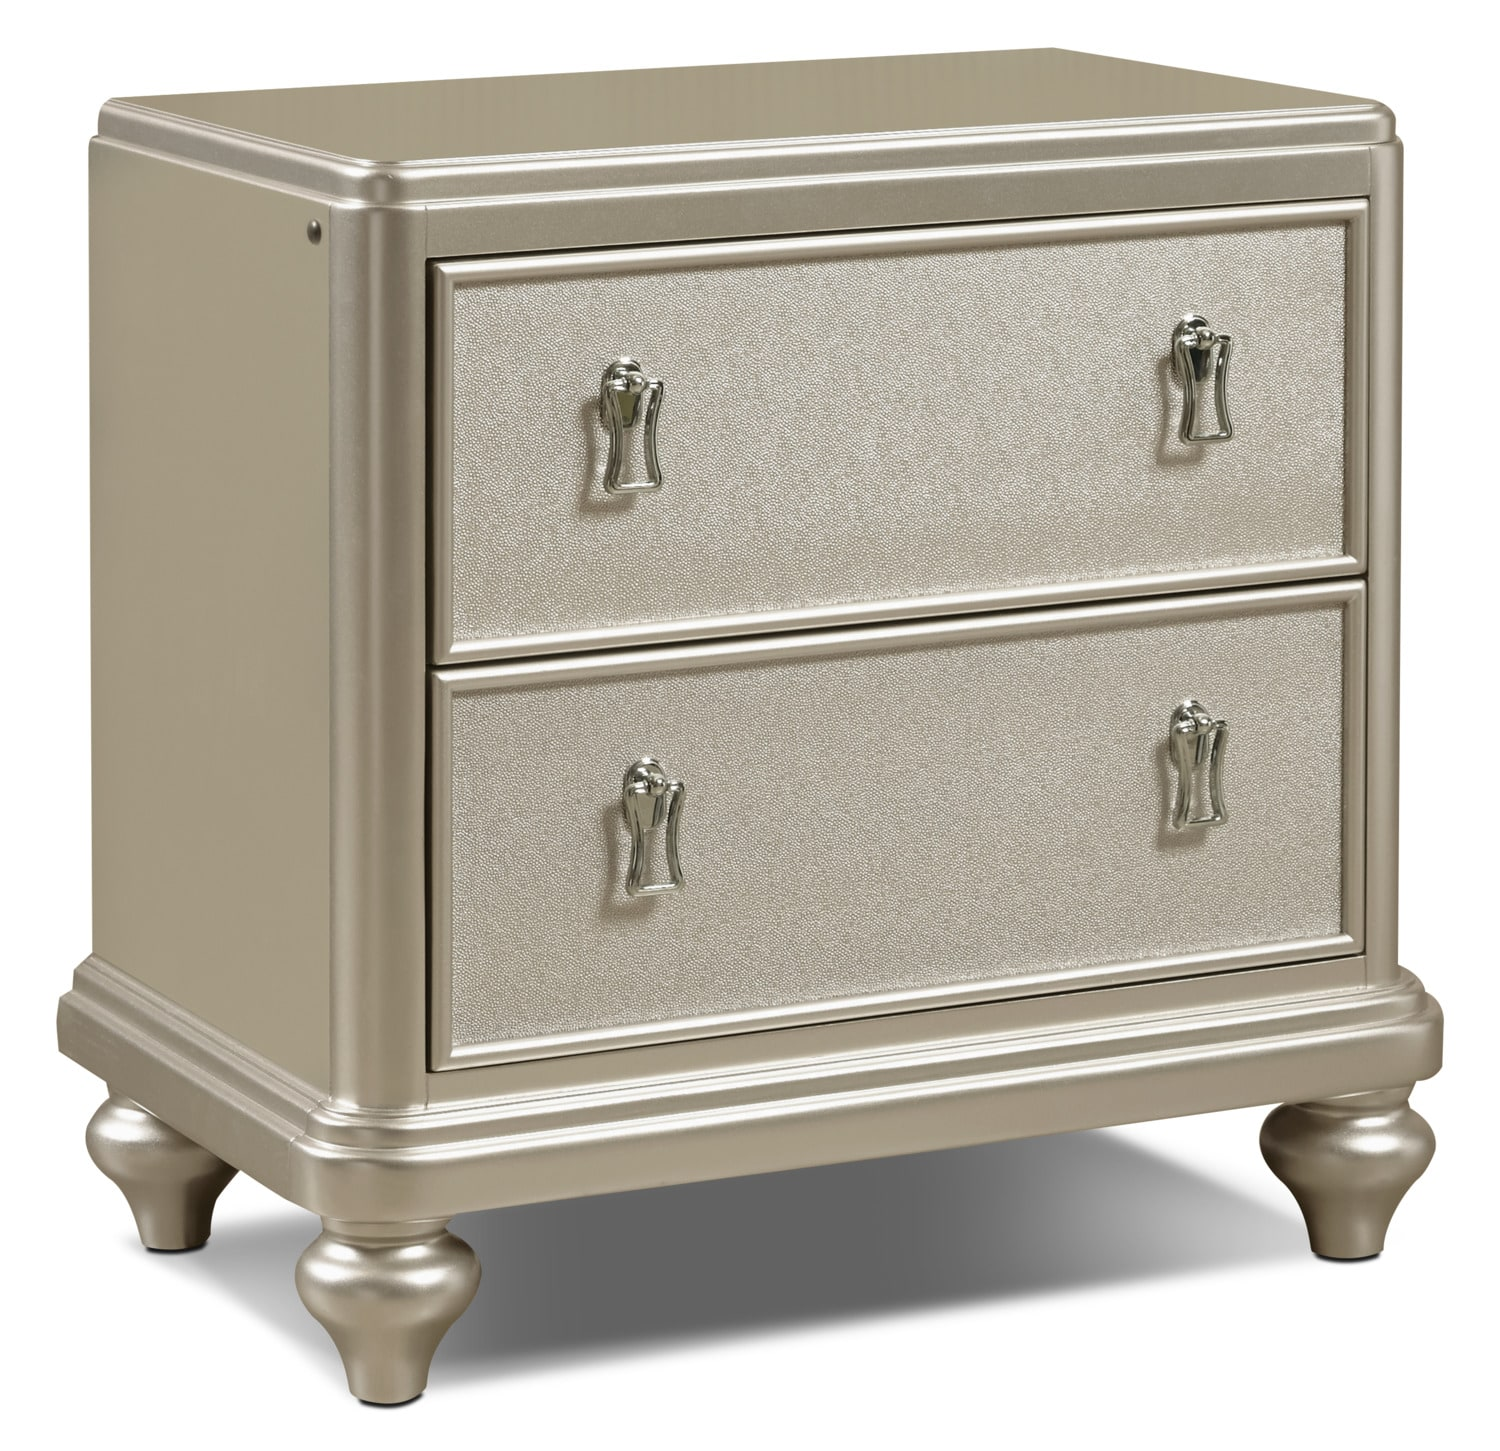 Bedroom Furniture - Diva Nightstand